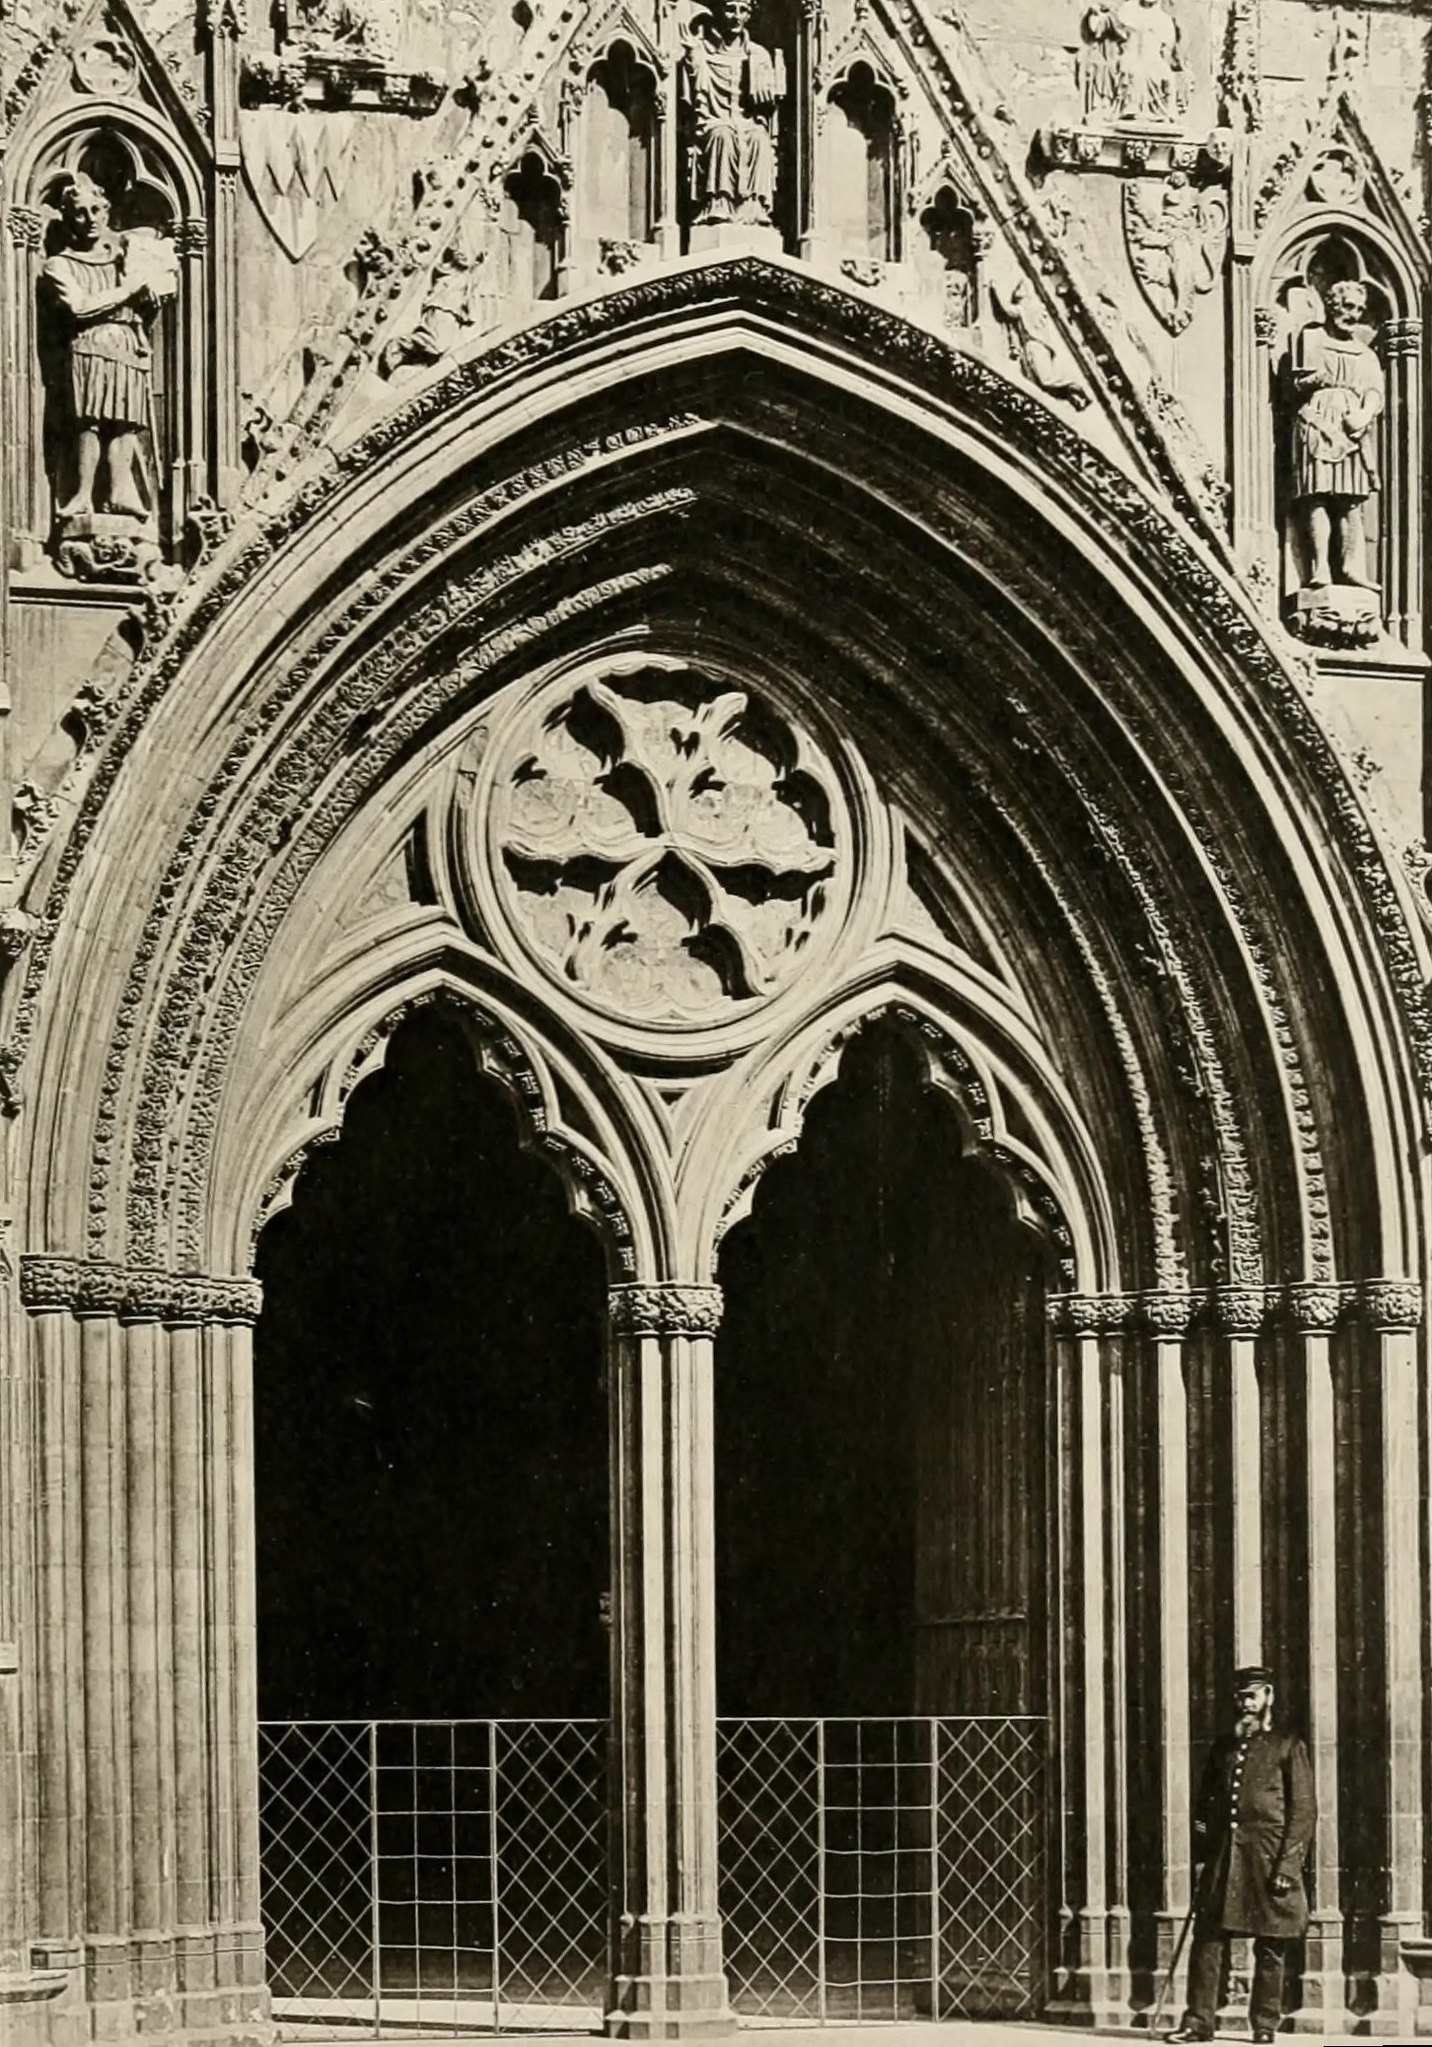 York Minster, late 1800s